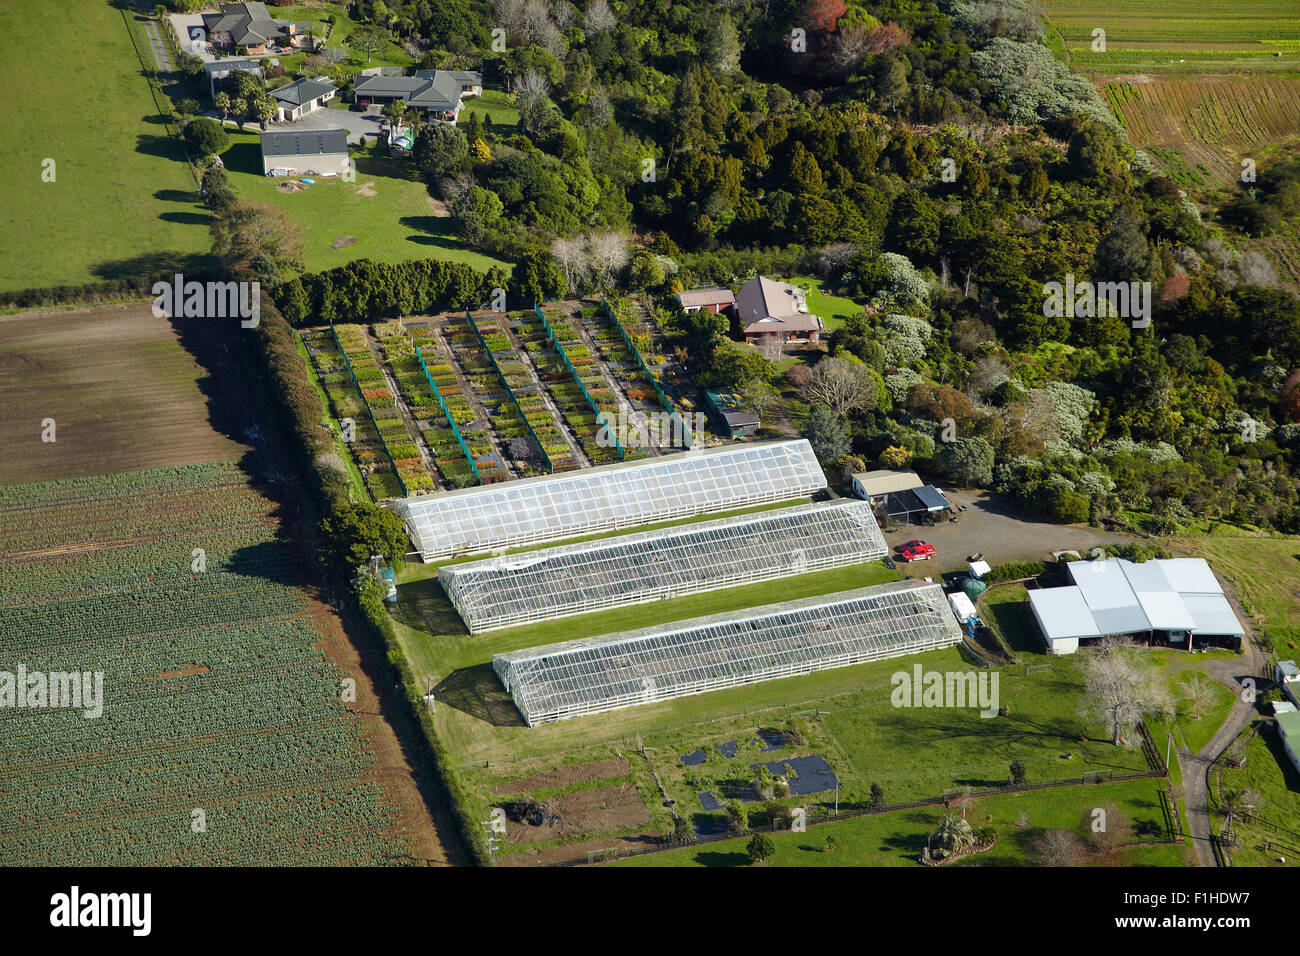 Glasshouses and nursery near Pukekohe, South Auckland, North Island, New Zealand - aerial - Stock Image